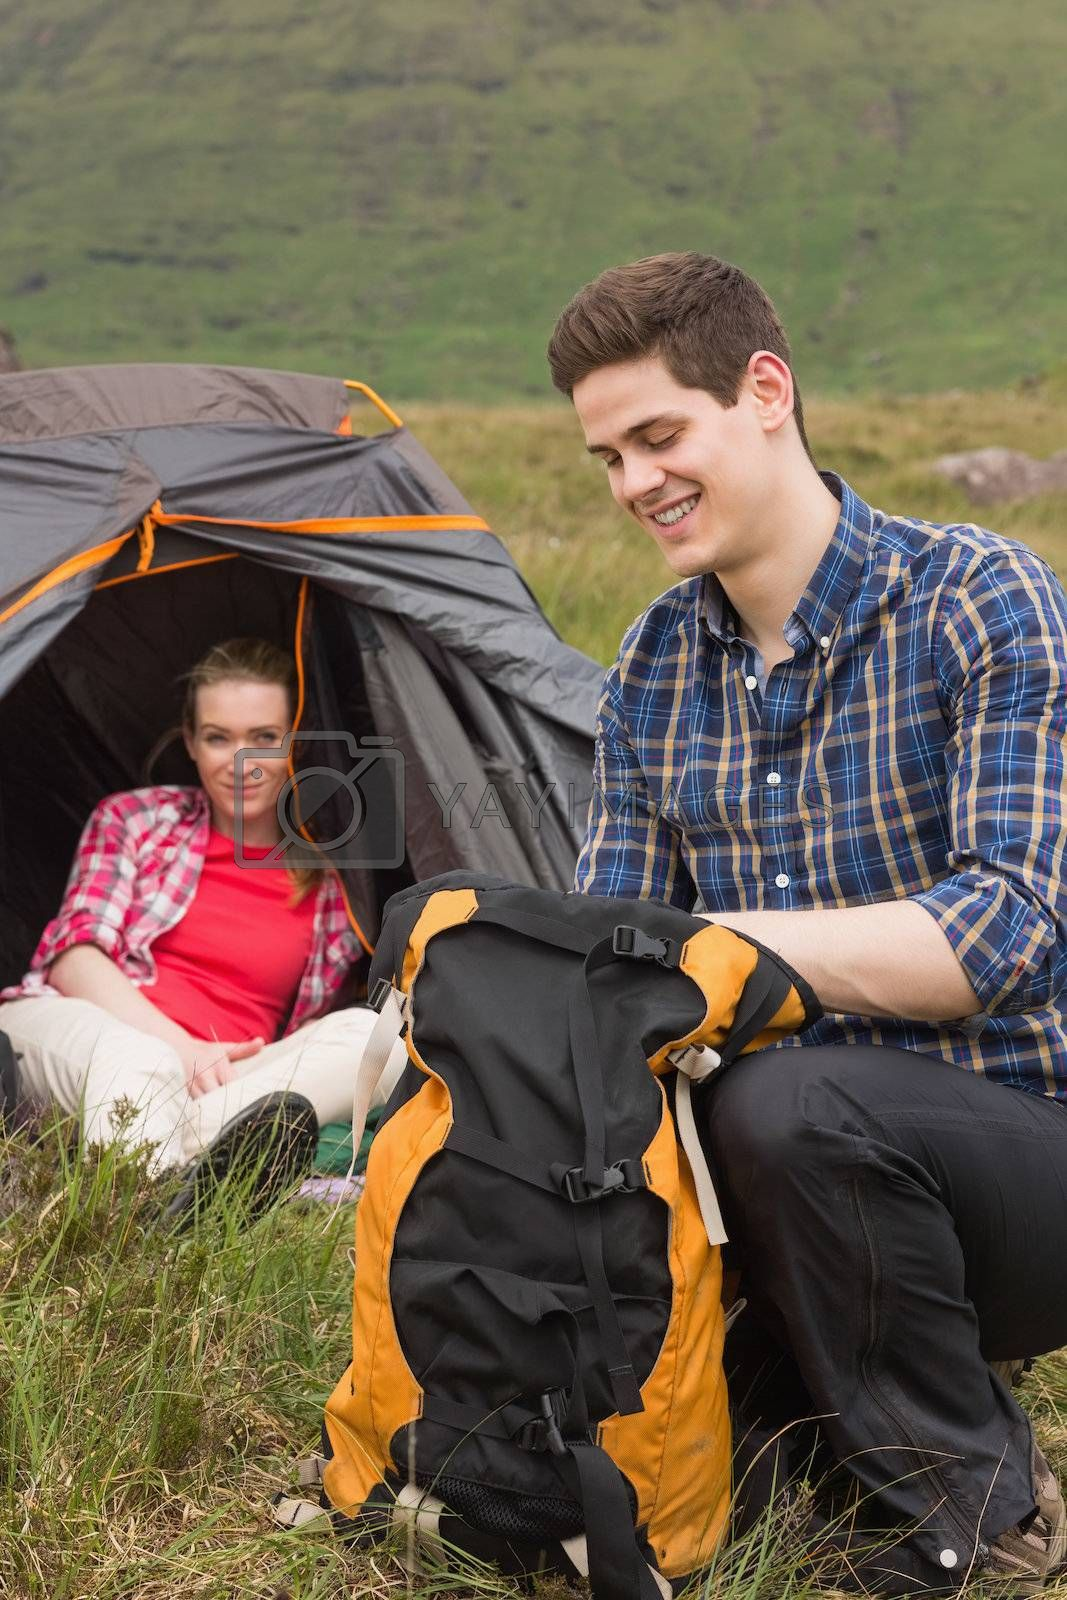 Man packing backpack while girlfriend sits in tent by Wavebreakmedia